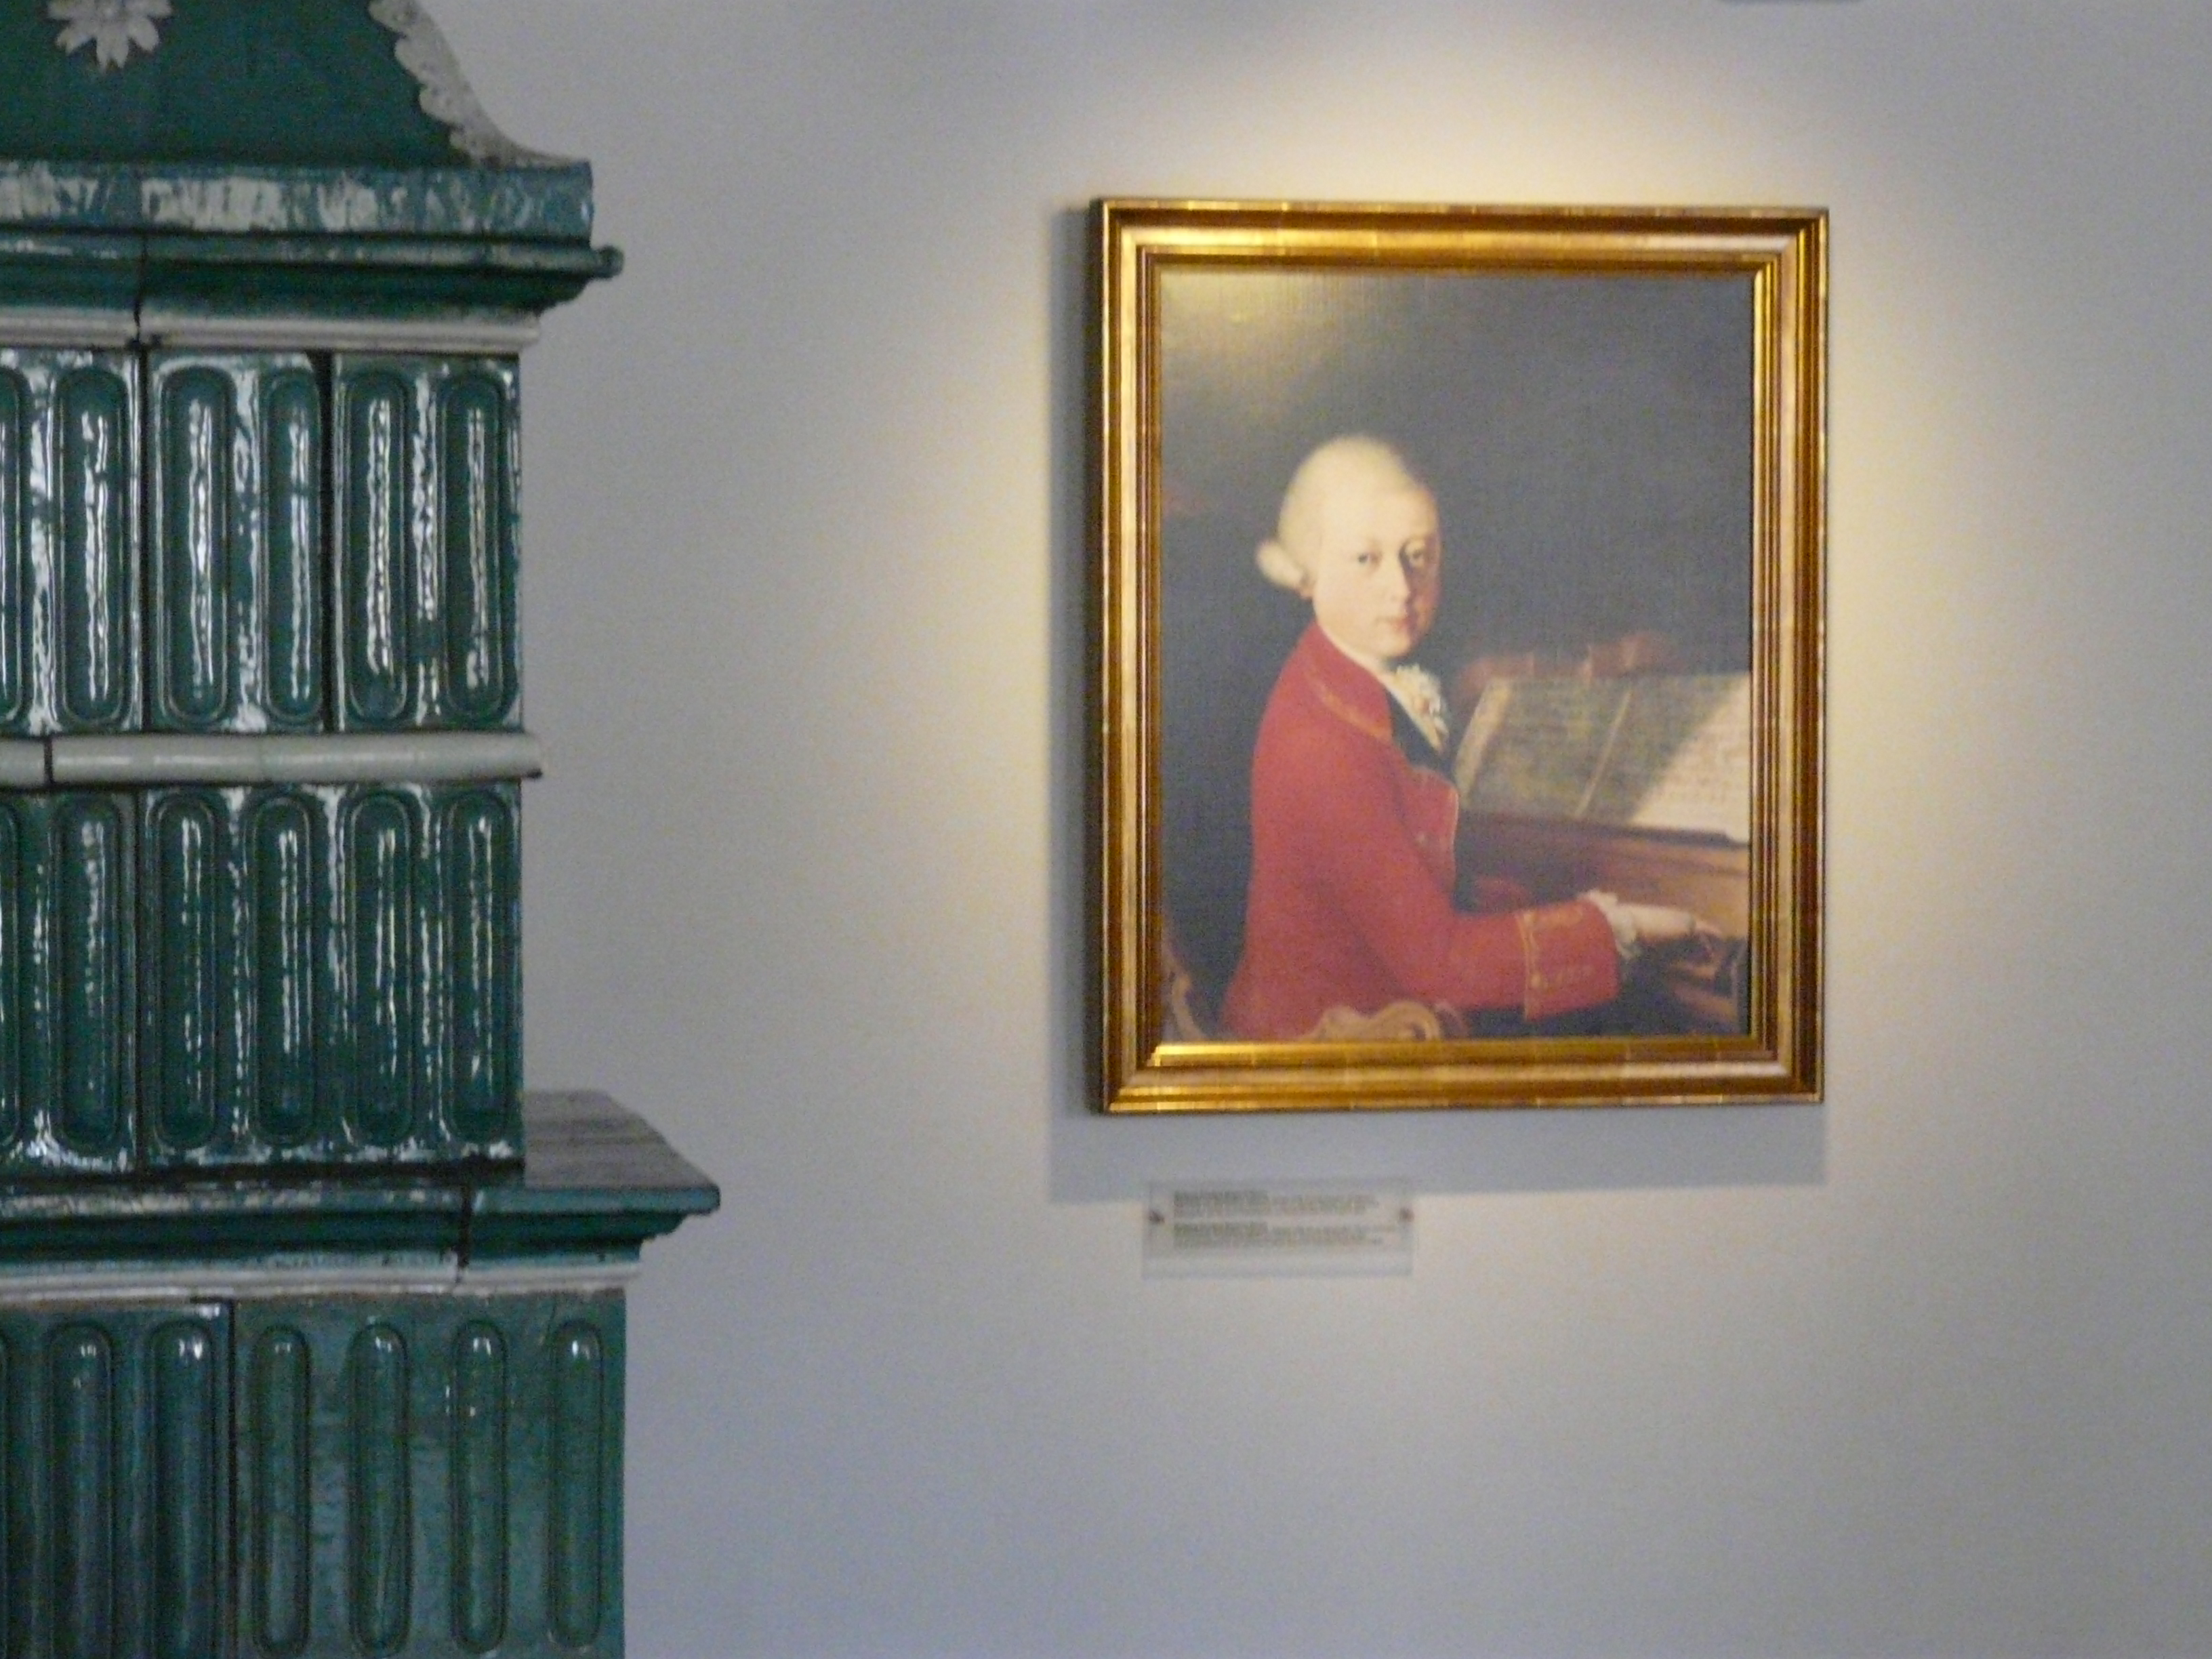 One of the rooms in the house with a portrait of young Mozart